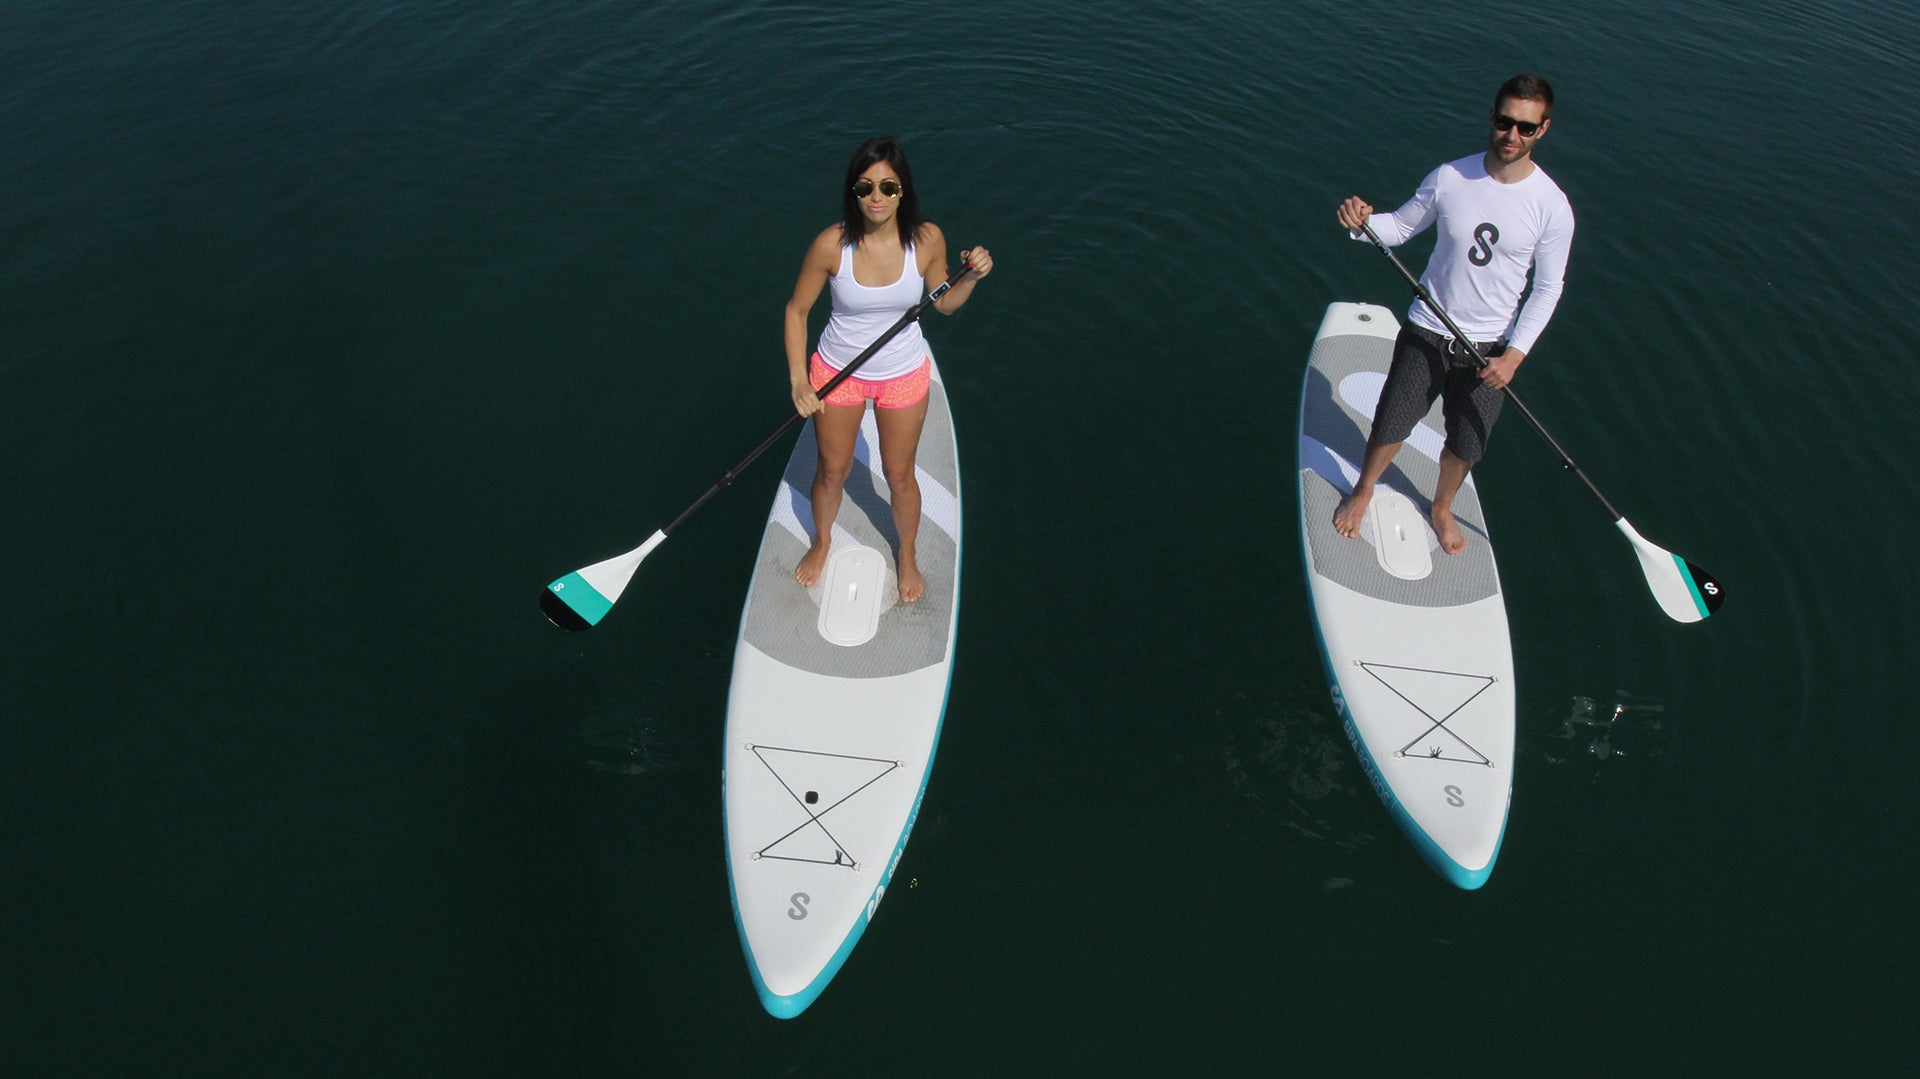 A Self-Inflating, Self-Propelled, Stand-Up Paddleboard